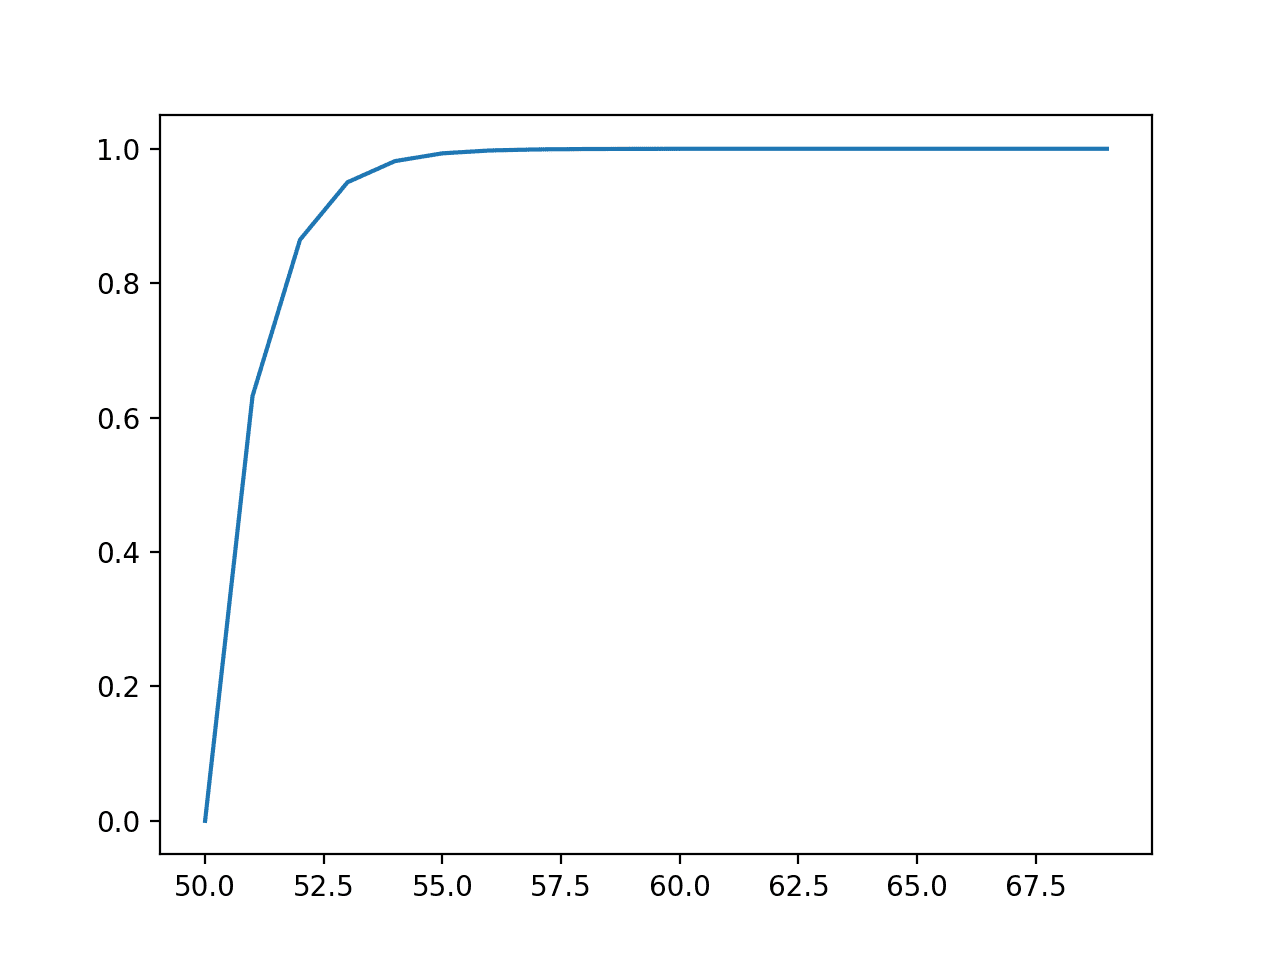 Line Plot of Events vs. Cumulative Probability or the Cumulative Density Function for the Exponential Distribution